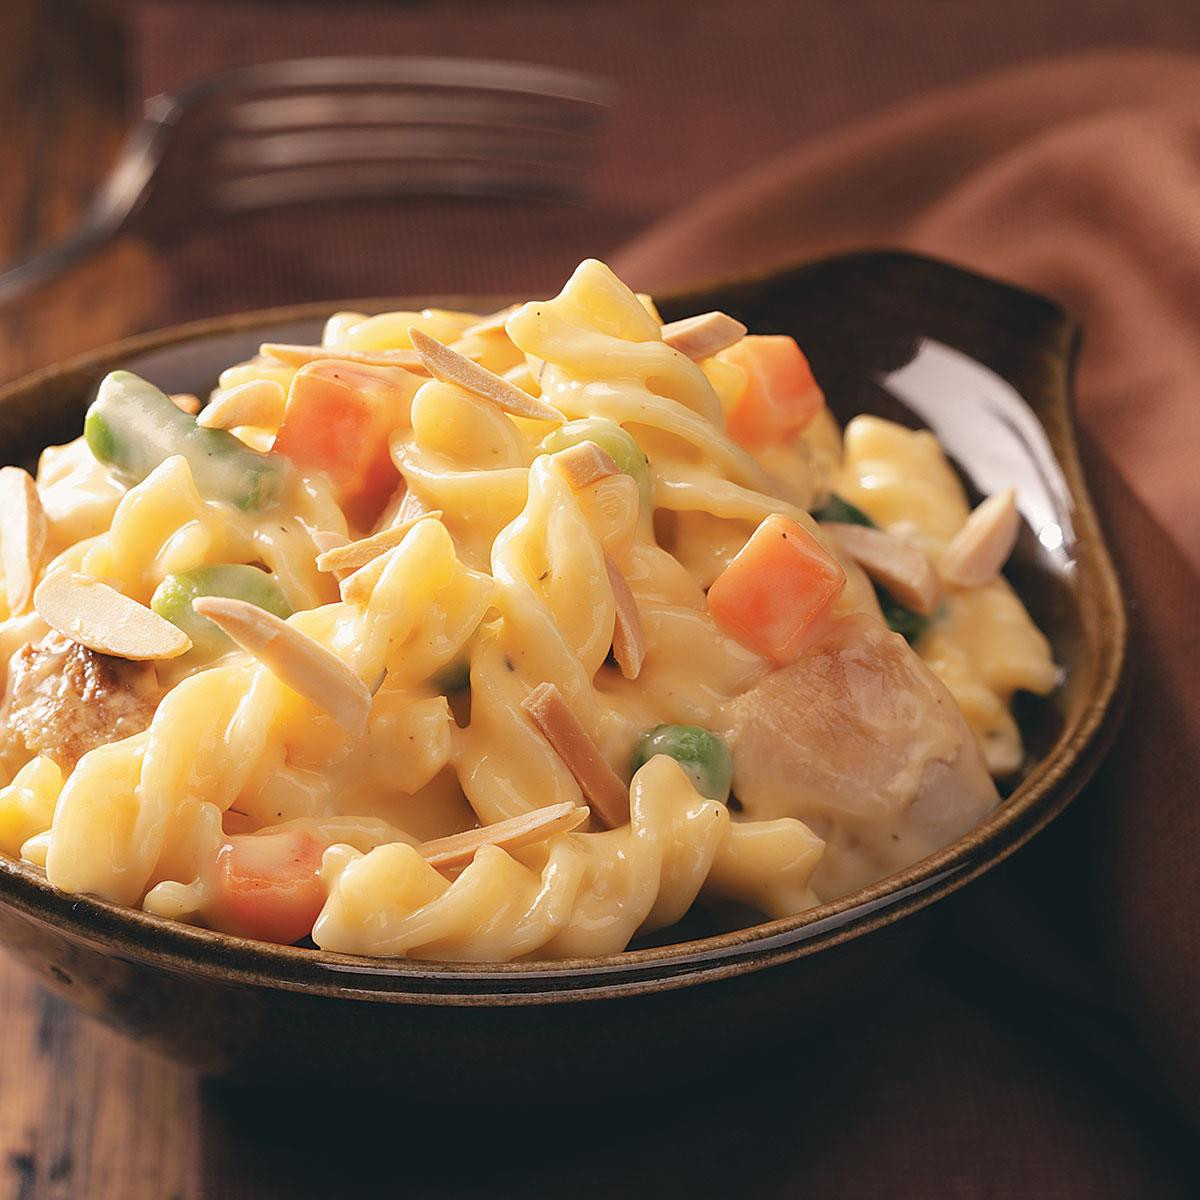 Turkey Thanksgiving Recipe  Cheddar Turkey Casserole Recipe